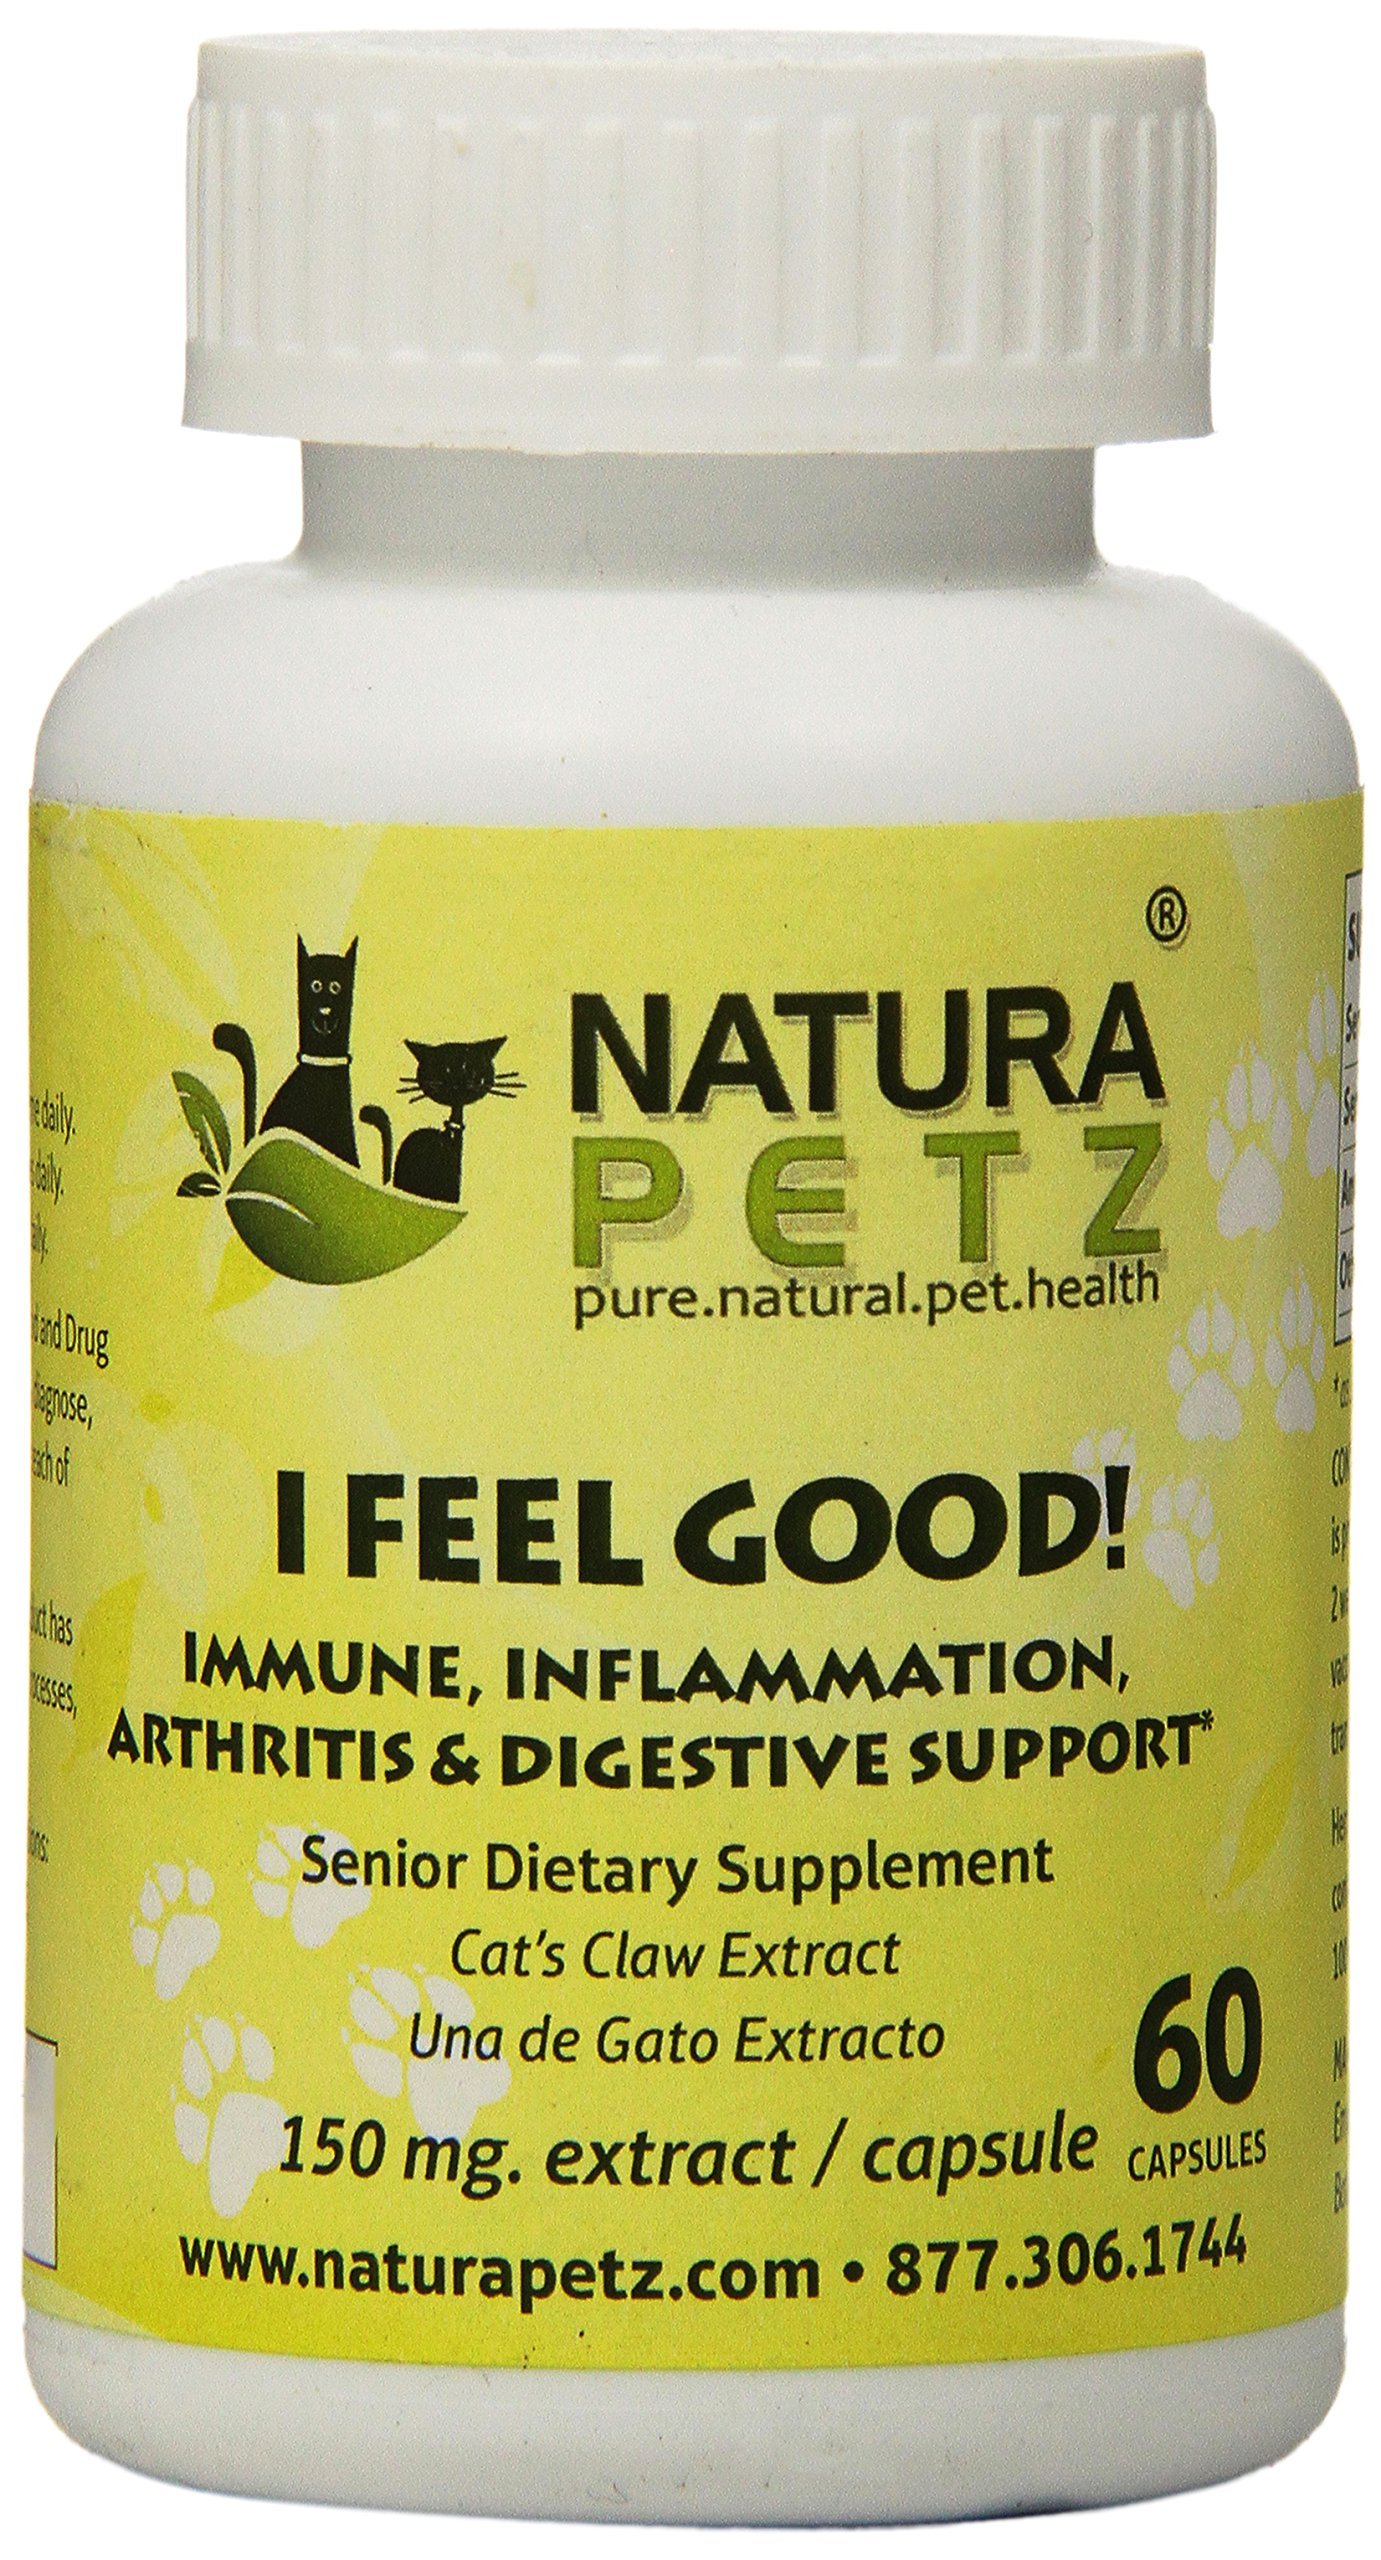 Natura Petz I Feel Good! Immune, Inflammation, Arthritis and Digestive Support for Senior Pets, 60 Capsules Extract, 150mg Per Capsule